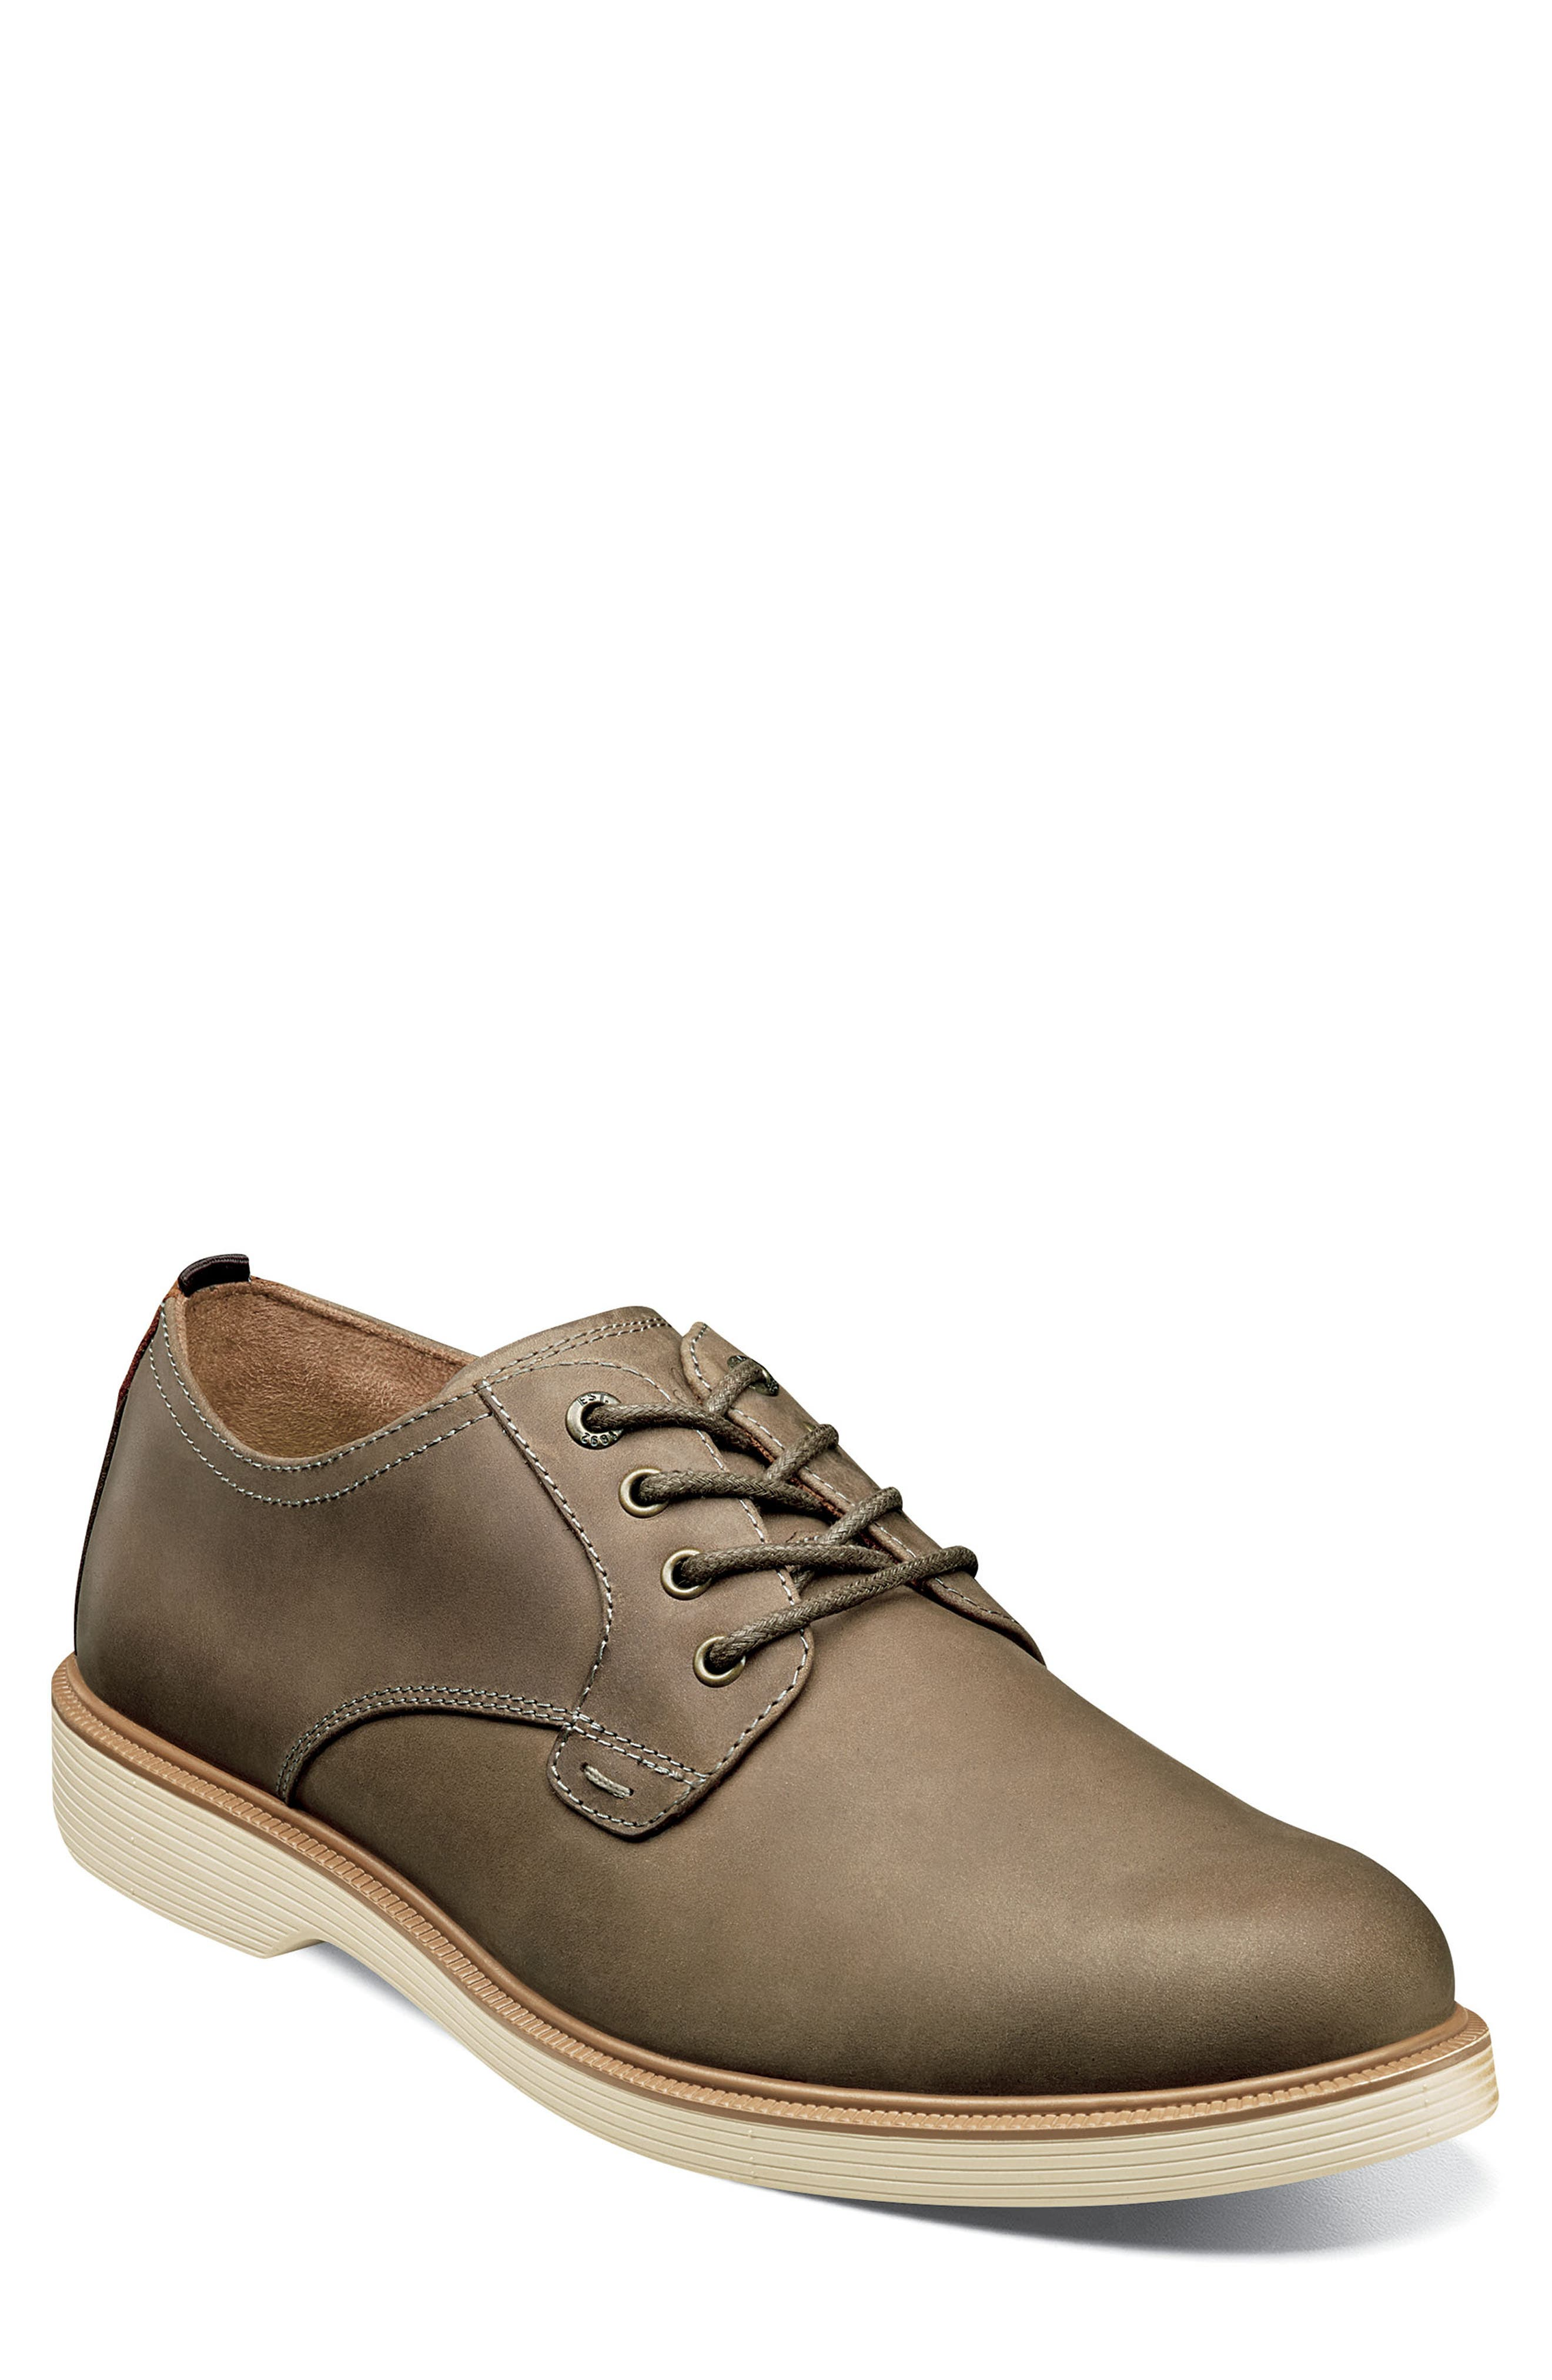 Image of Florsheim Supacush Leather Plain Toe Derby